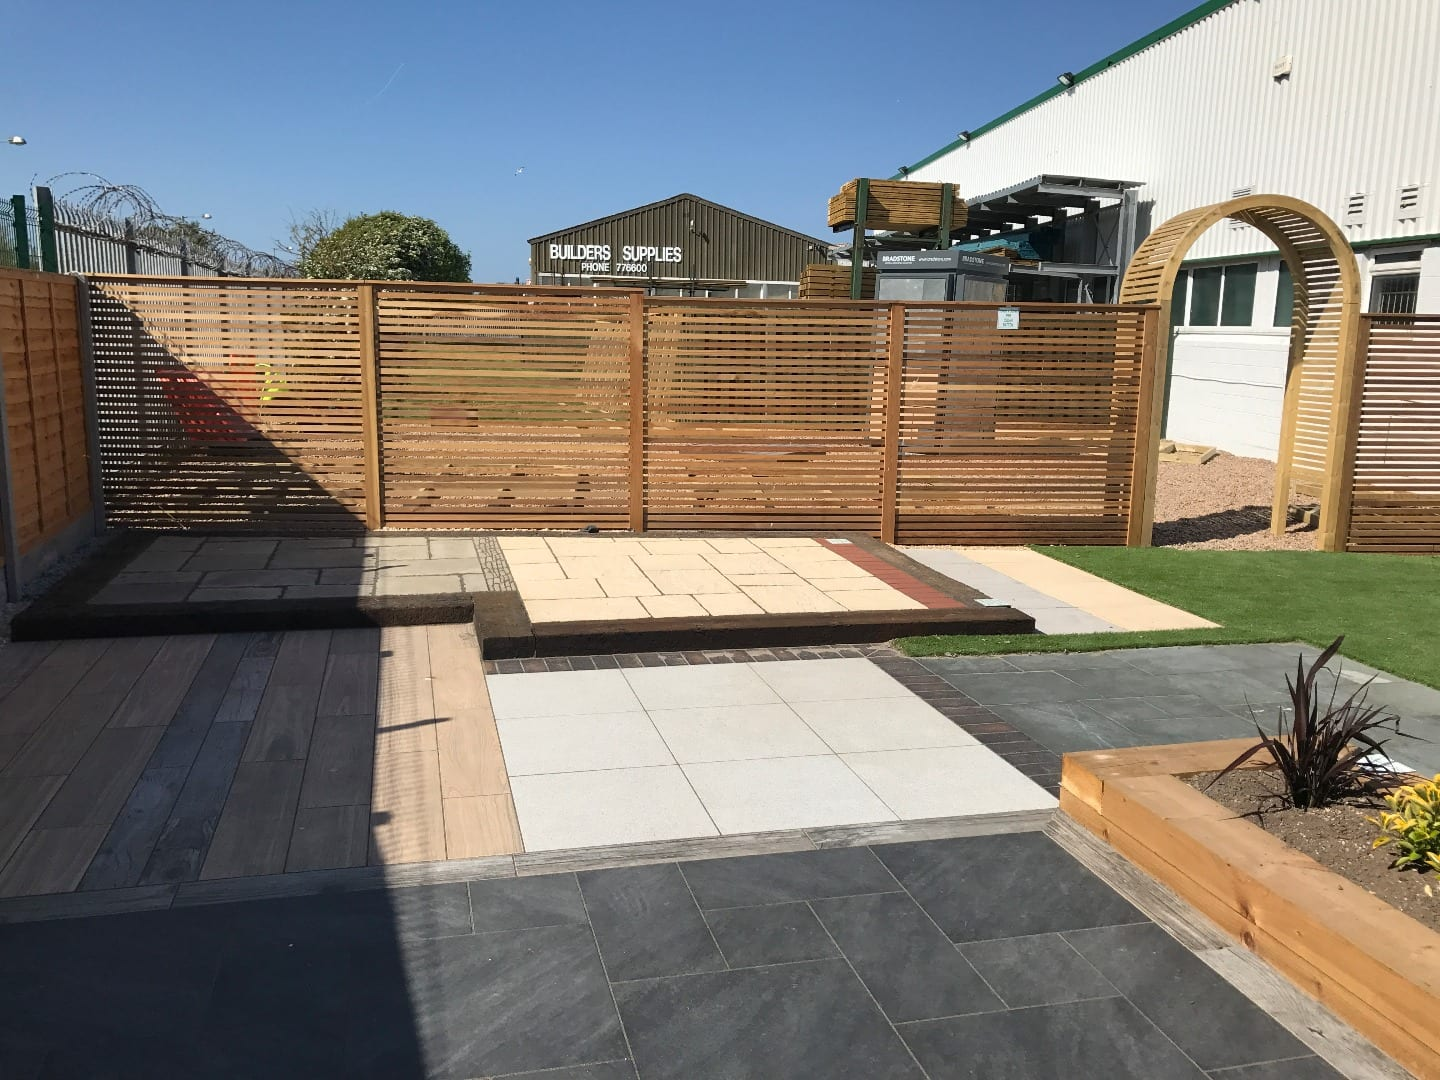 Garden display area at Builders Supplies